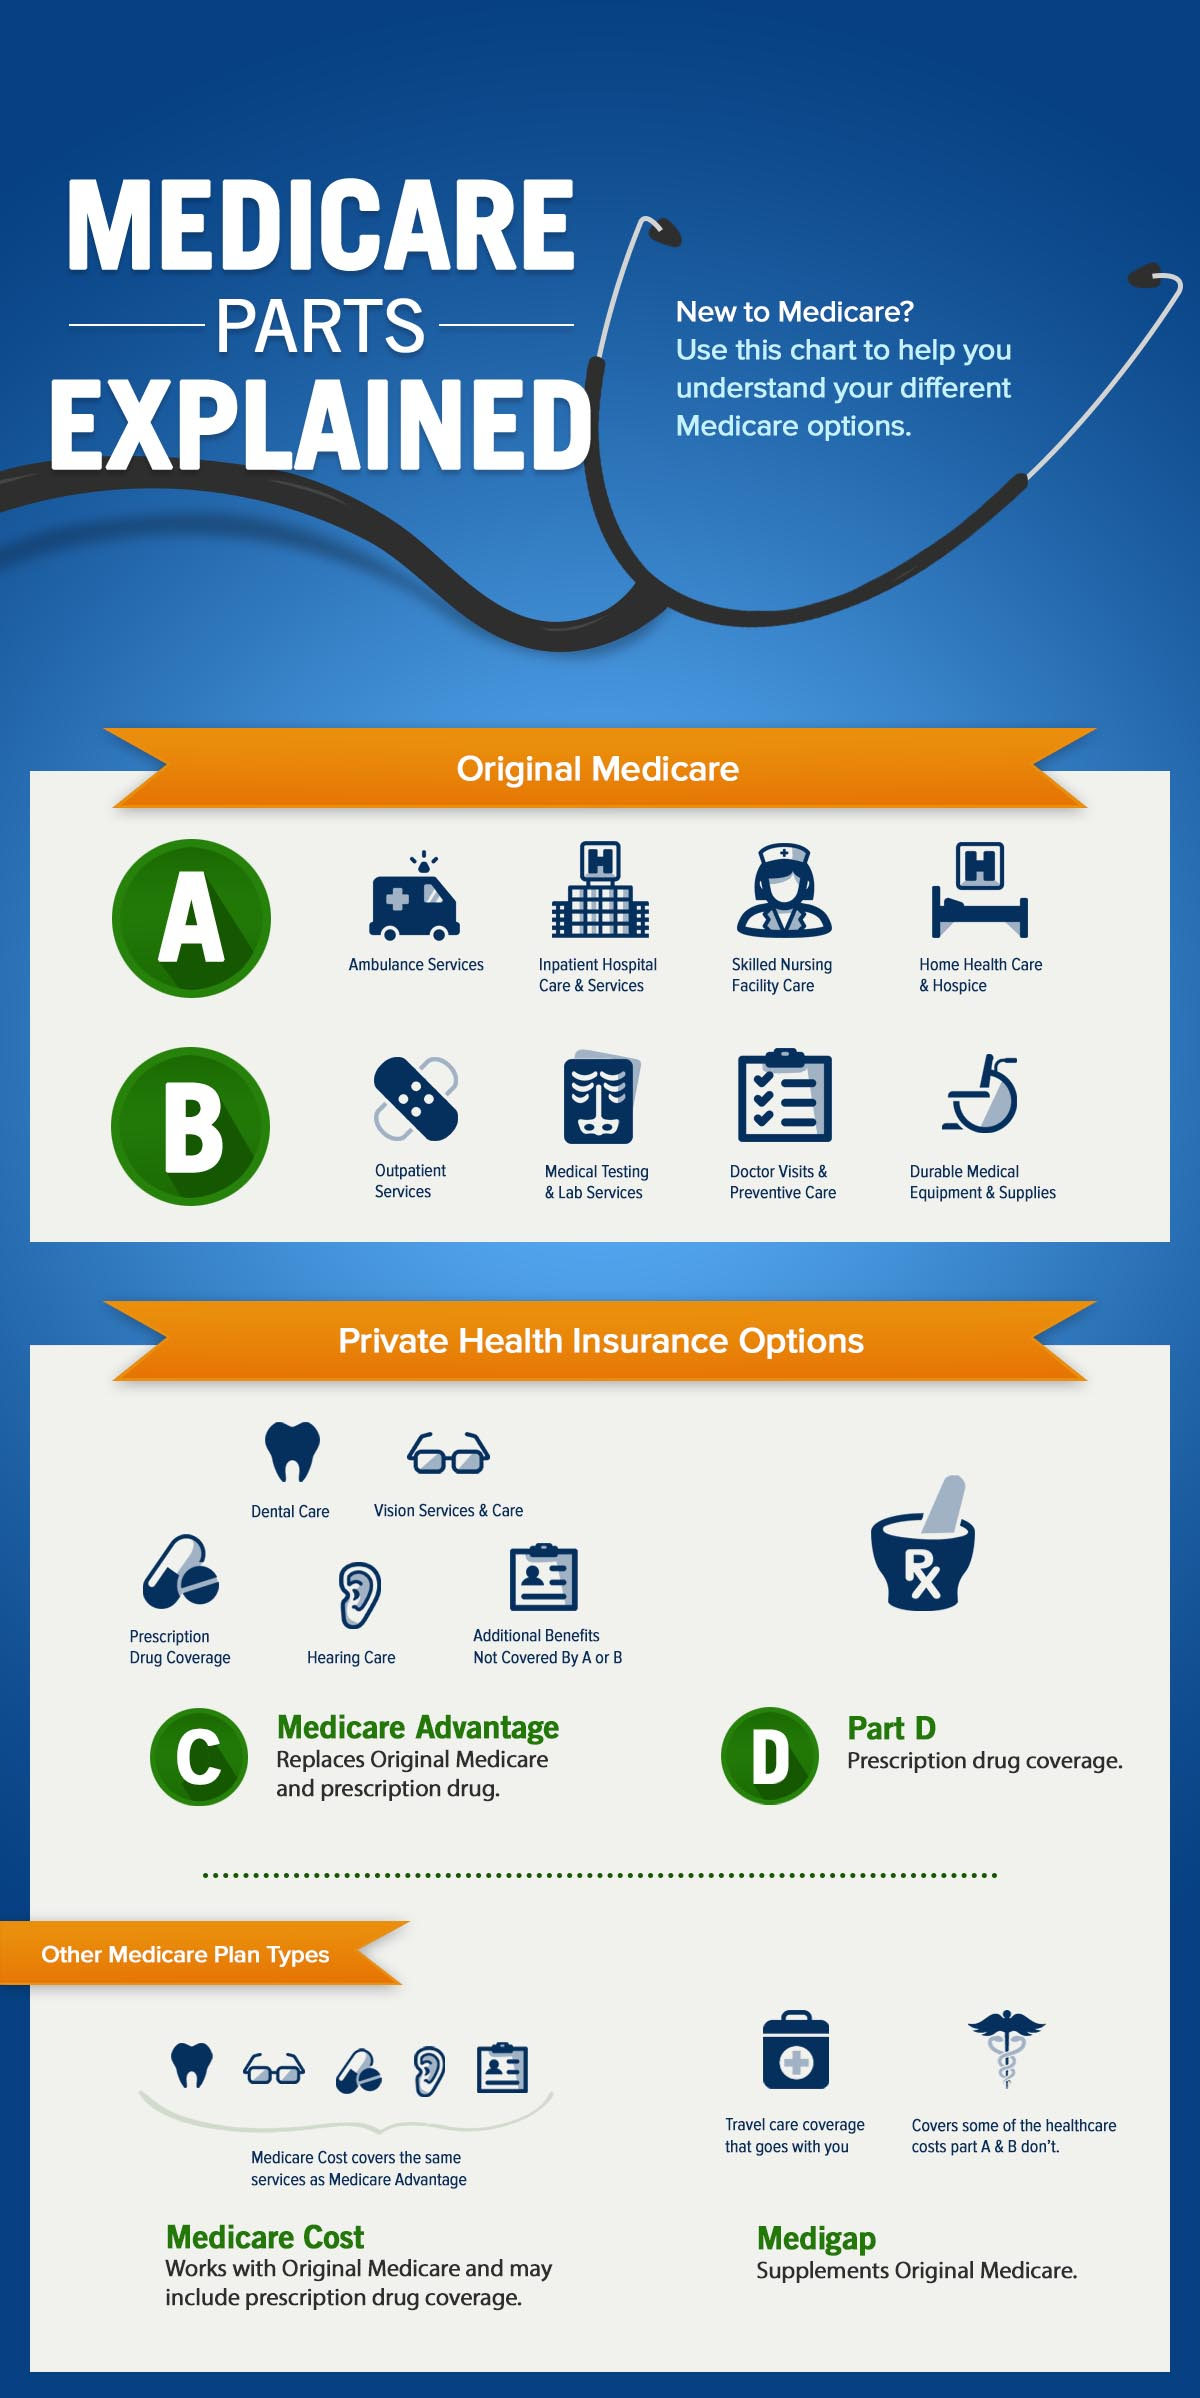 medicare-parts-infographic.jpg